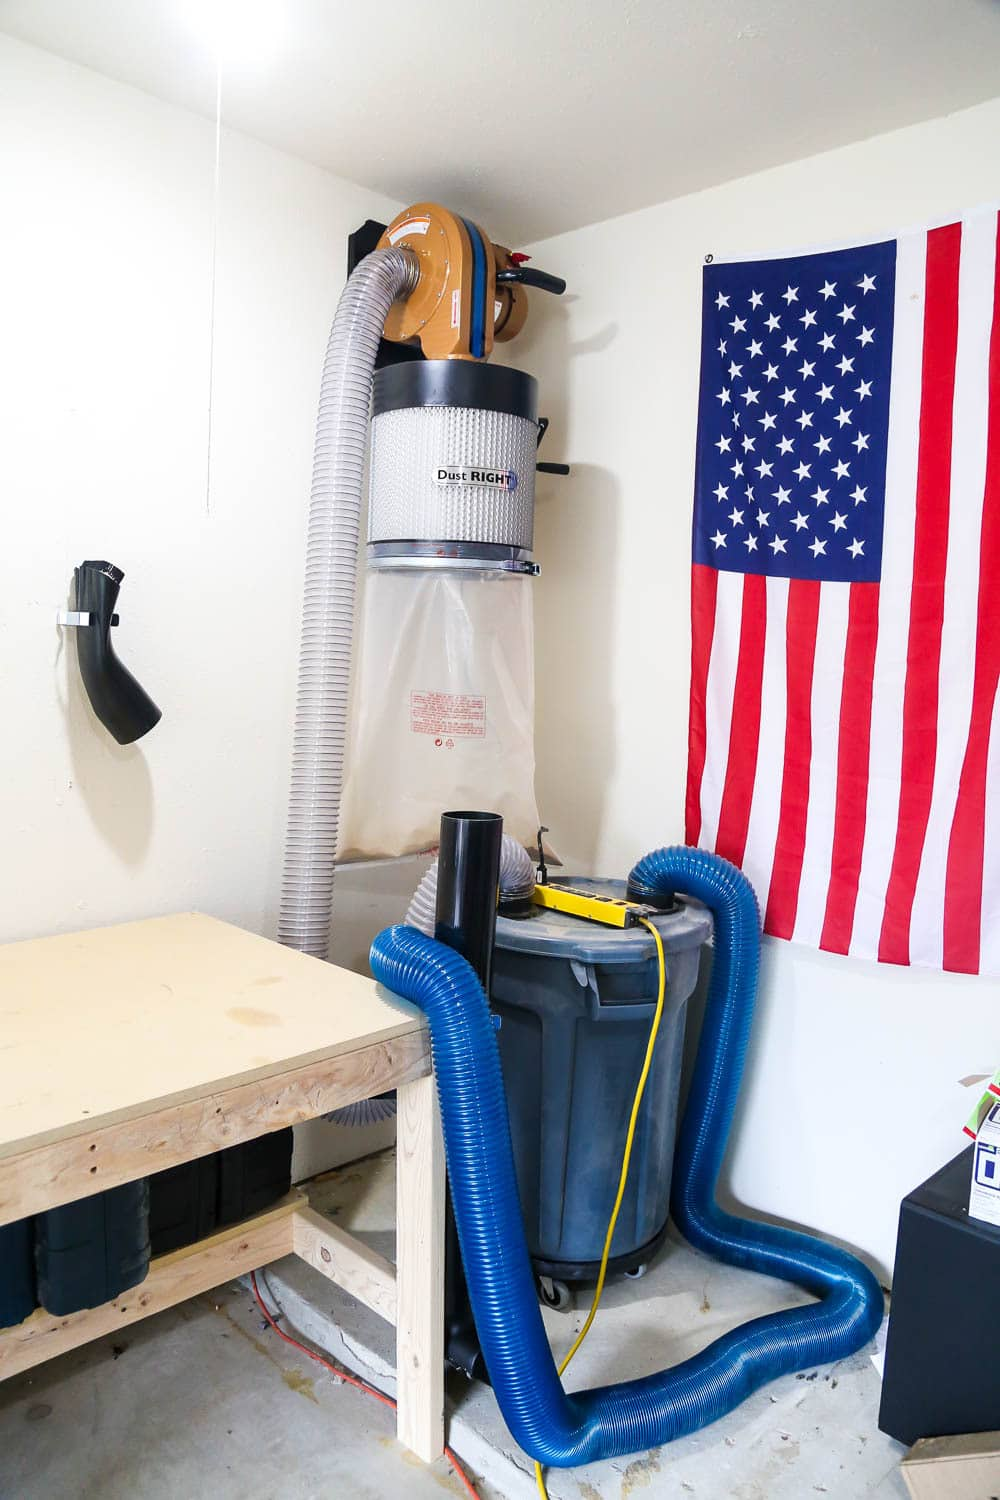 Review of Rockler dust collection system